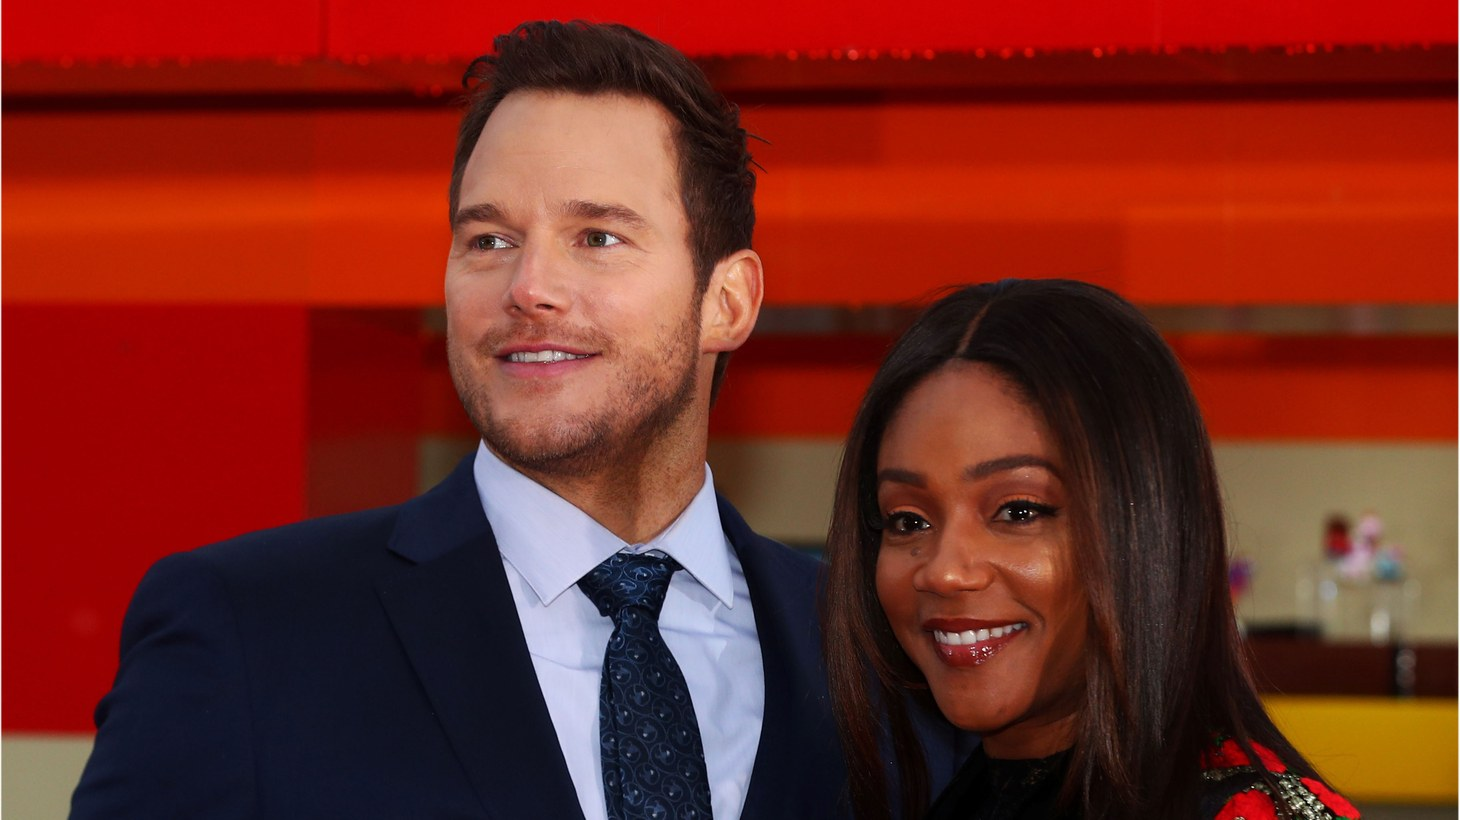 Chris Pratt and Tiffany Haddish pose during a photocall to promote the forthcoming film 'Lego Movie 2' in London, Britain February 1st, 2019.